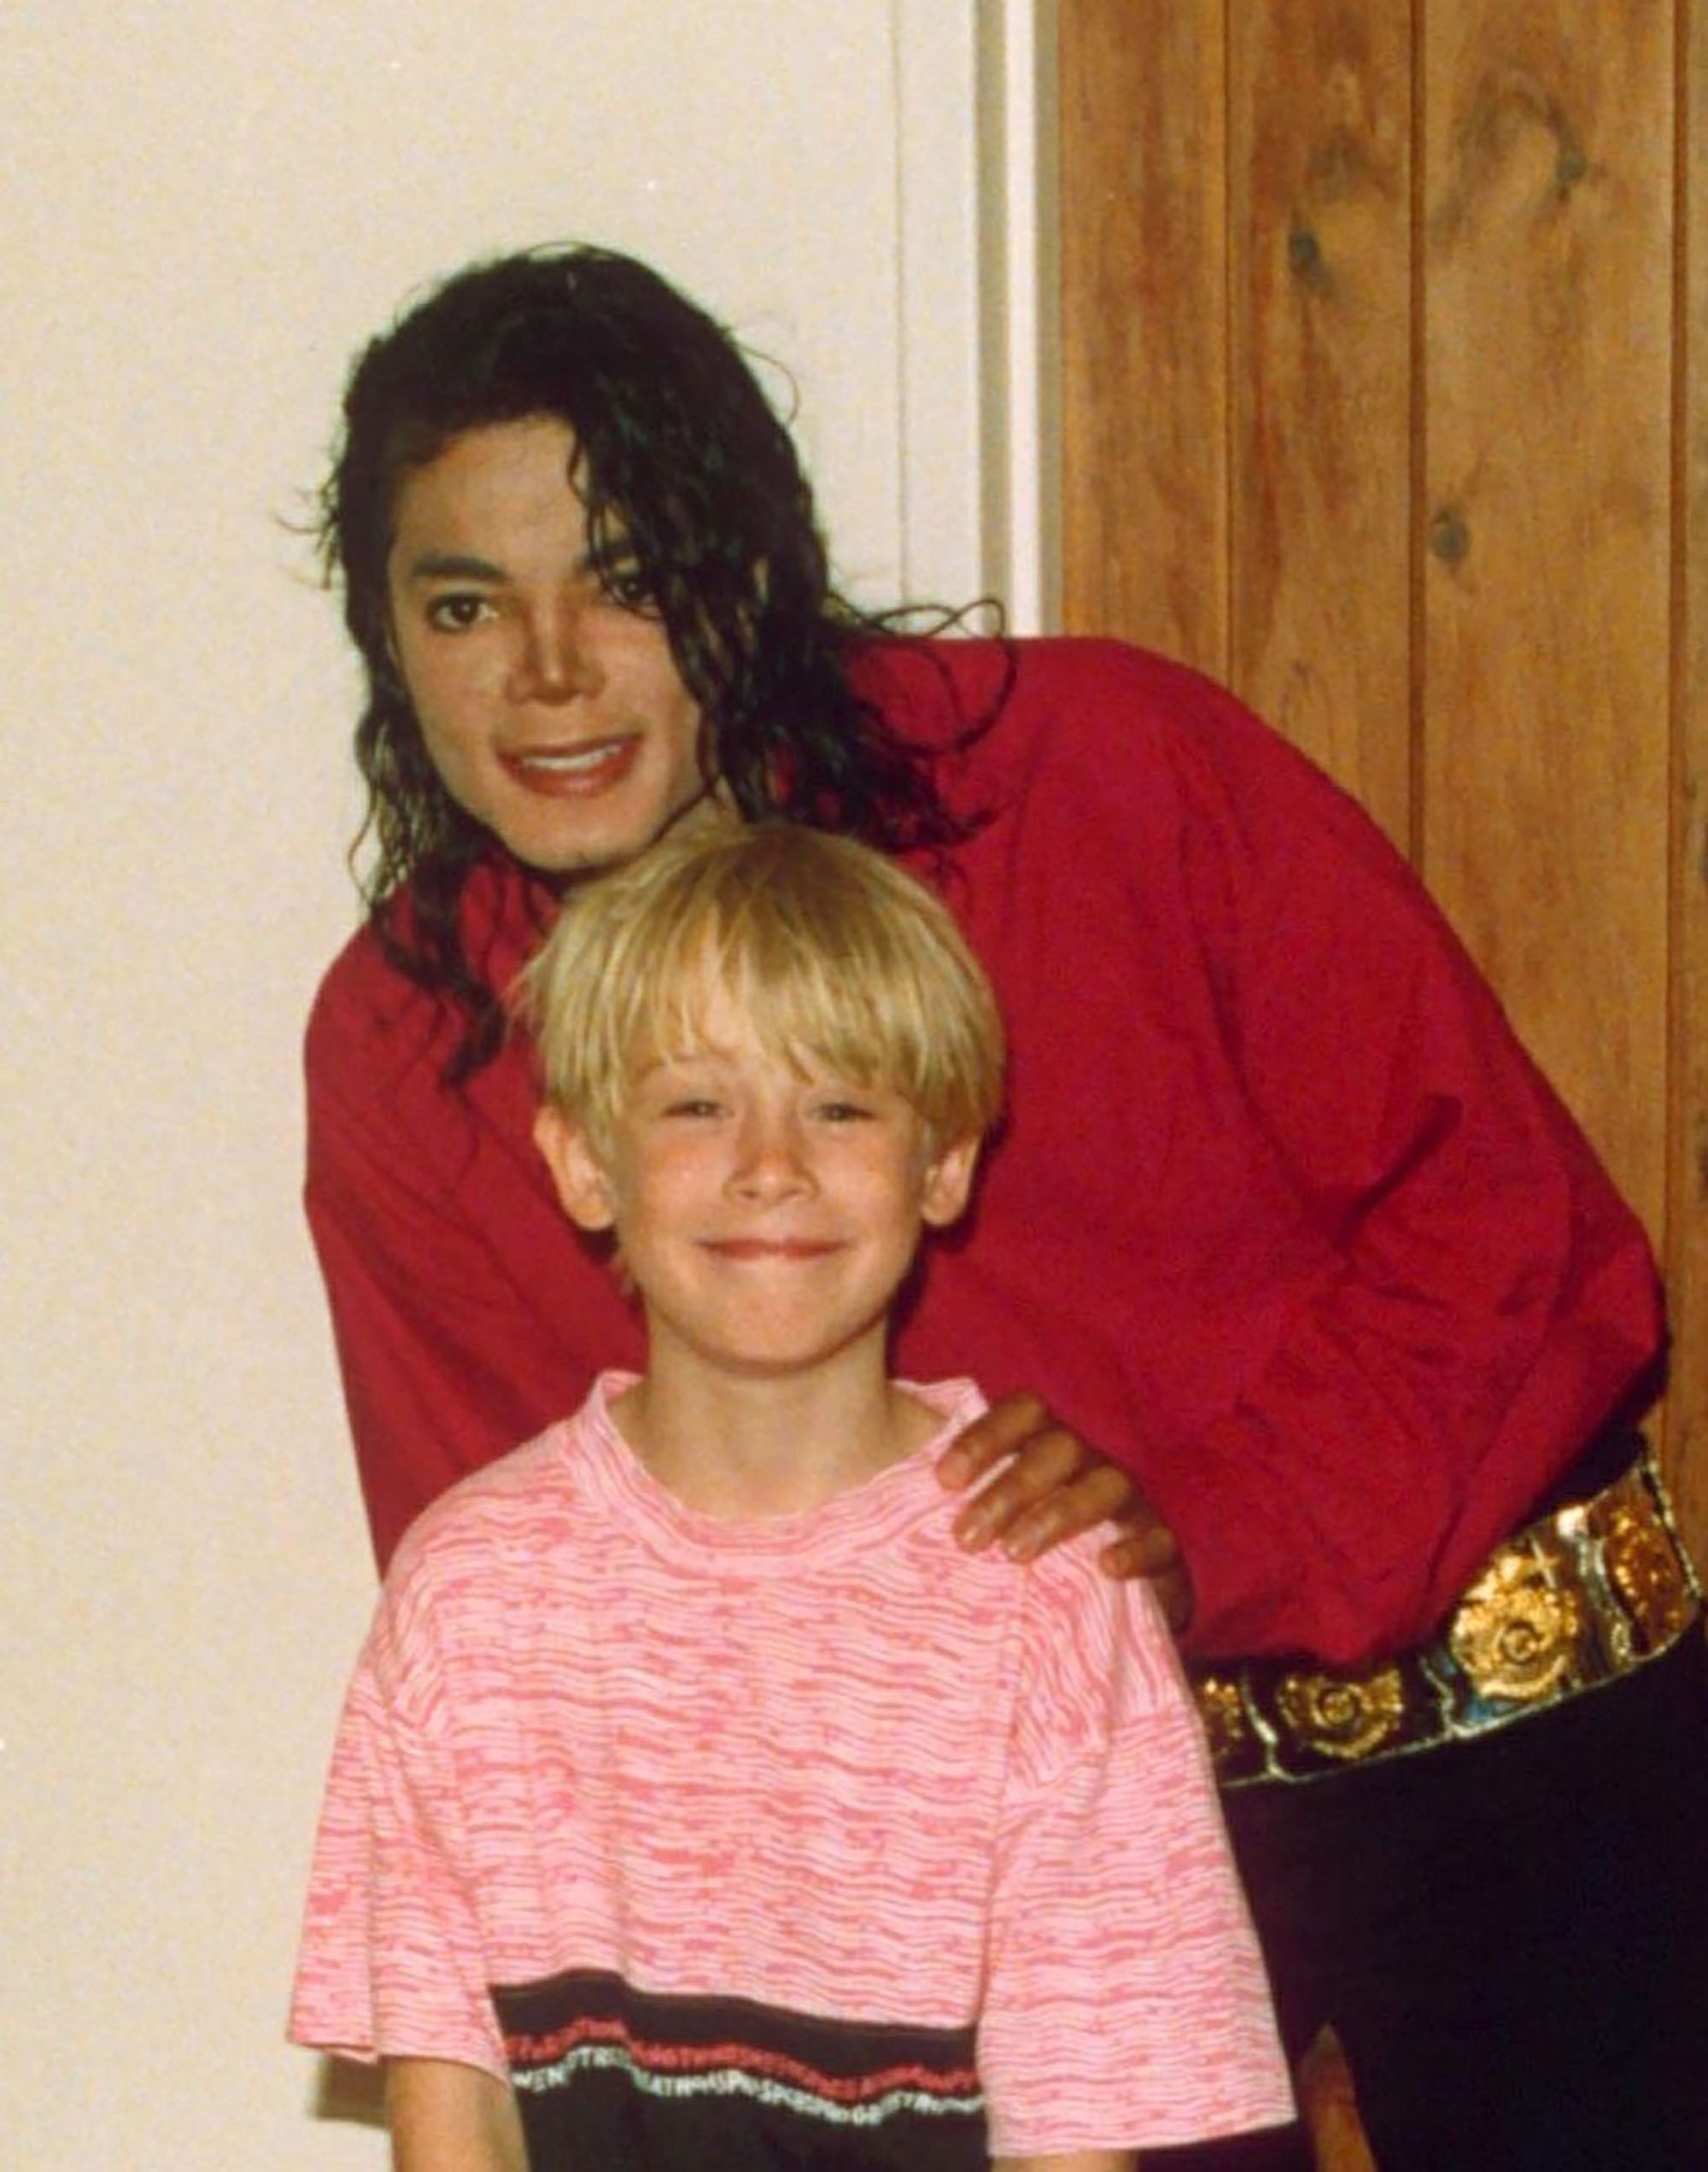 Macaulay Culkin and Michael Jackson